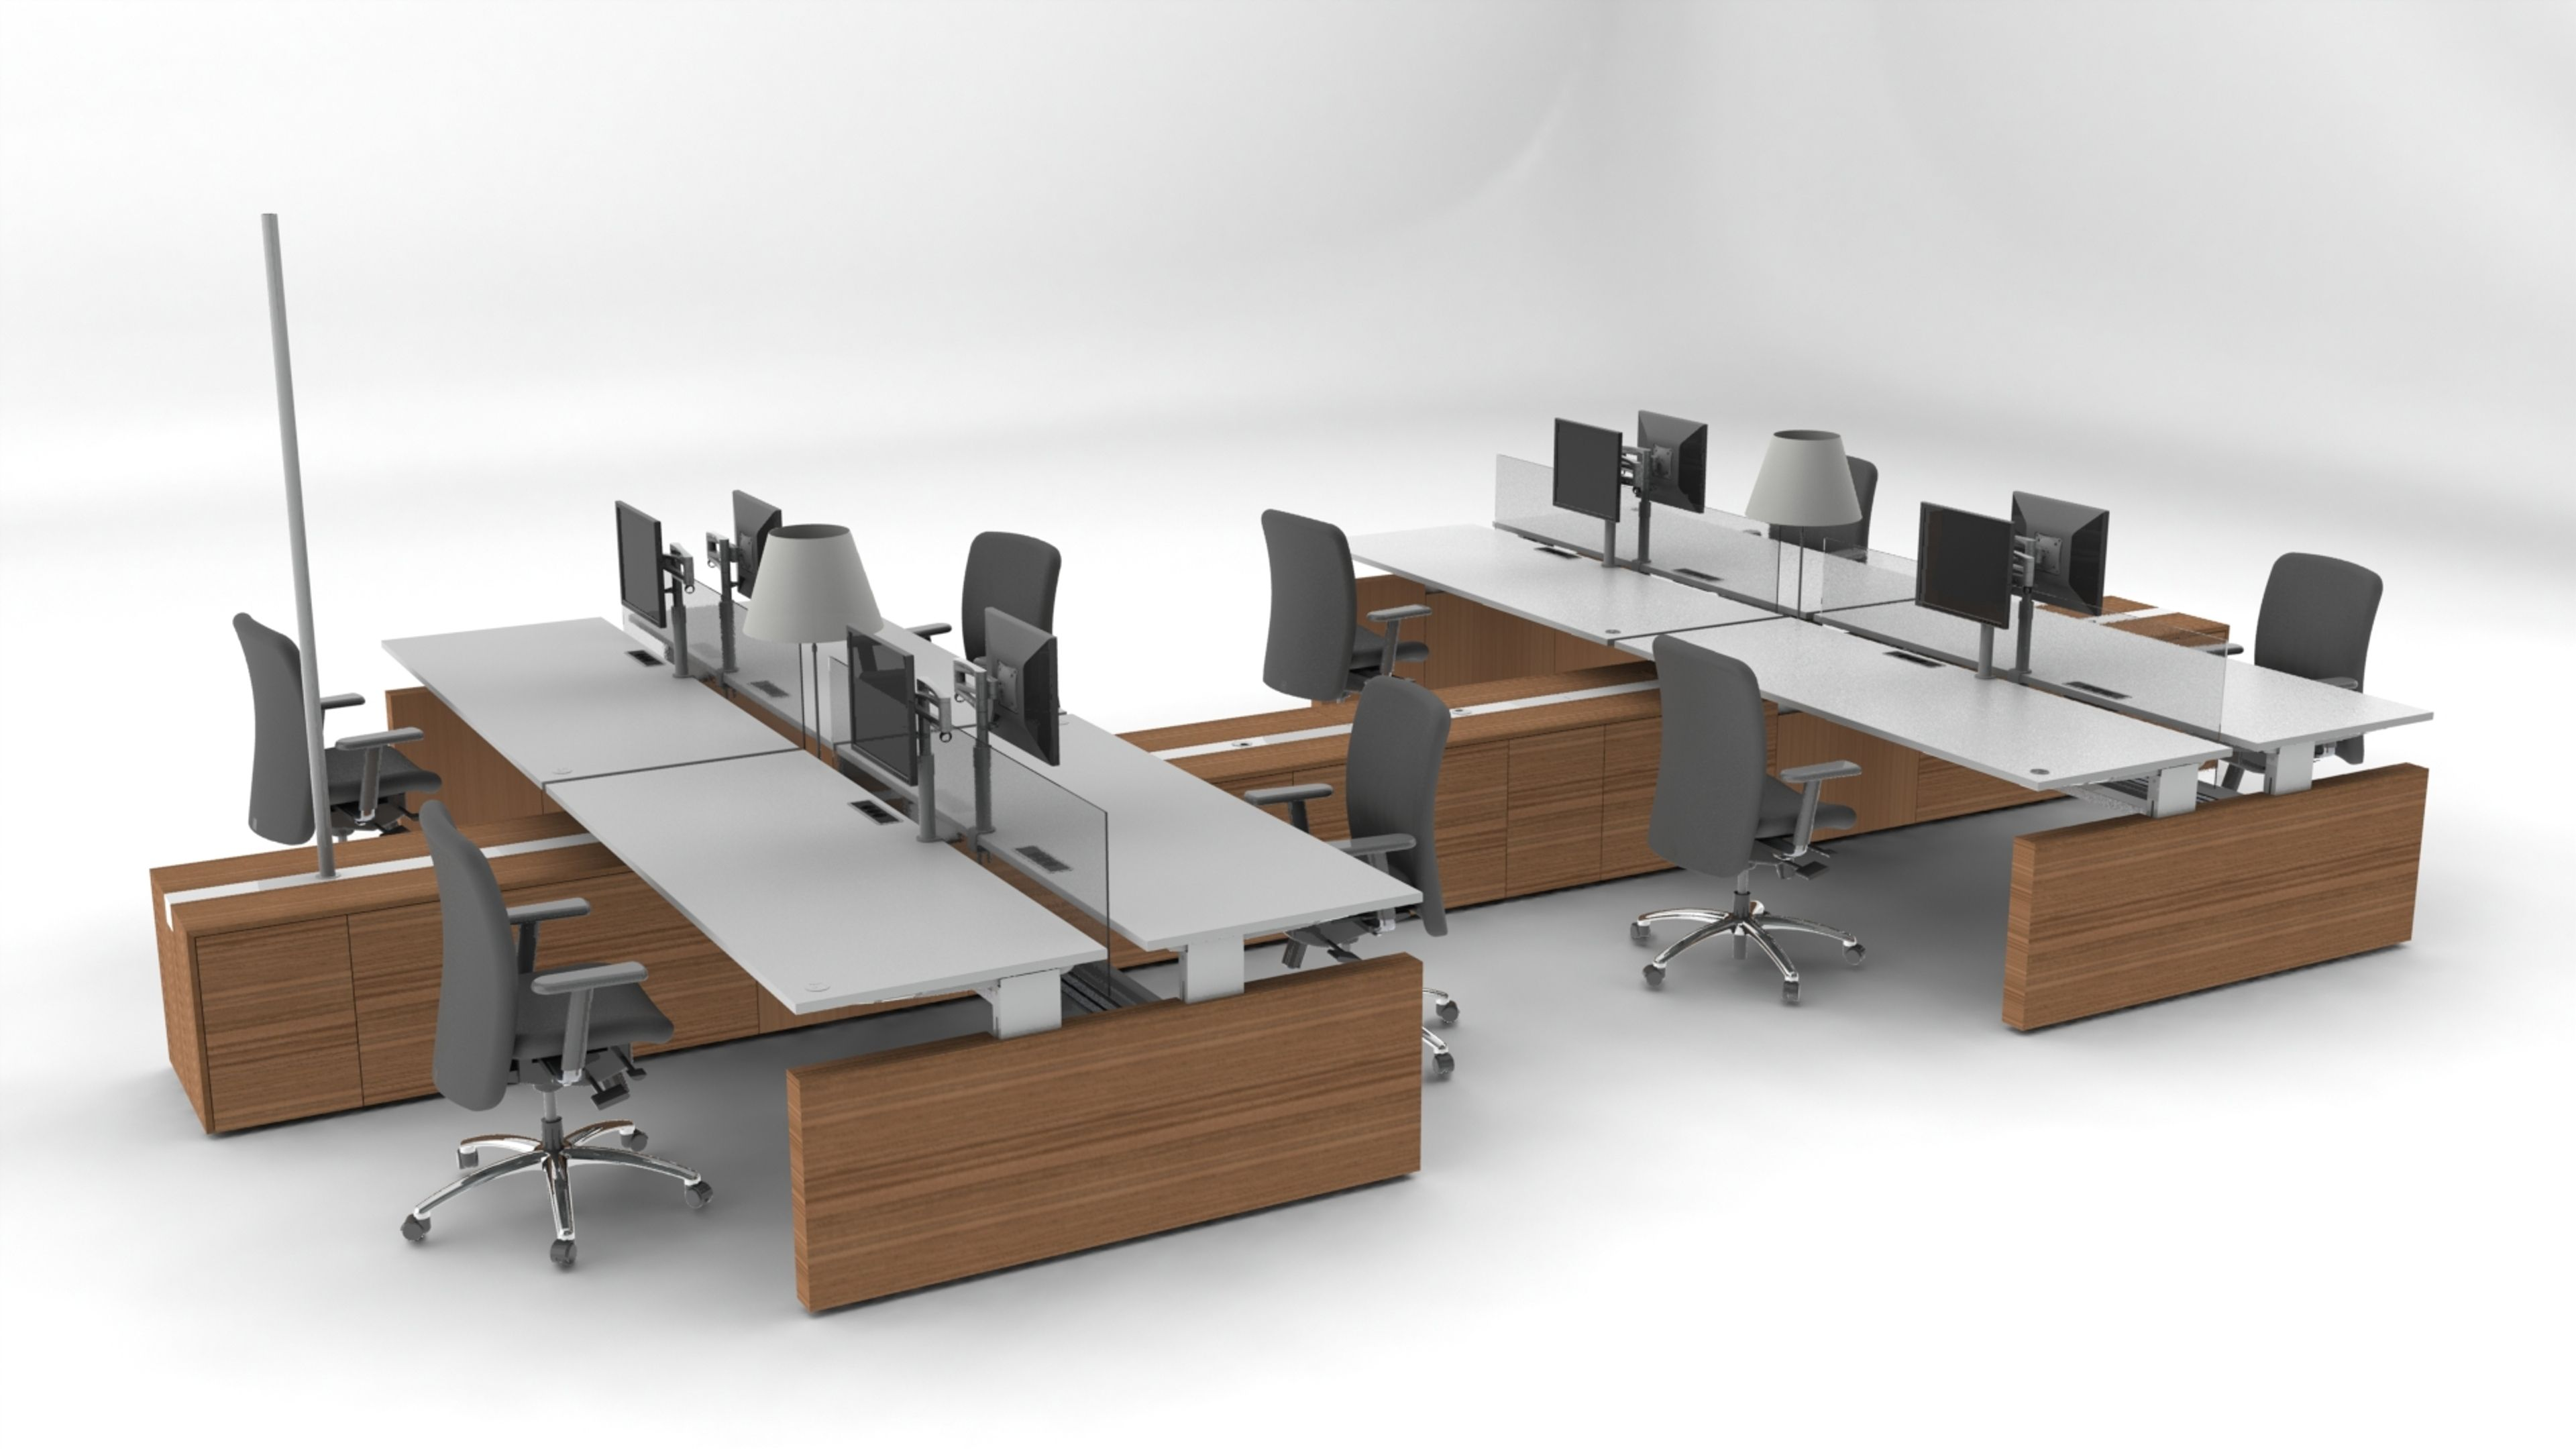 Lovely Modular Office Furniture Desktop Wallpaper HD #jmnzn3 3840x2160 Px 1.81 MB  Furniture Home Design